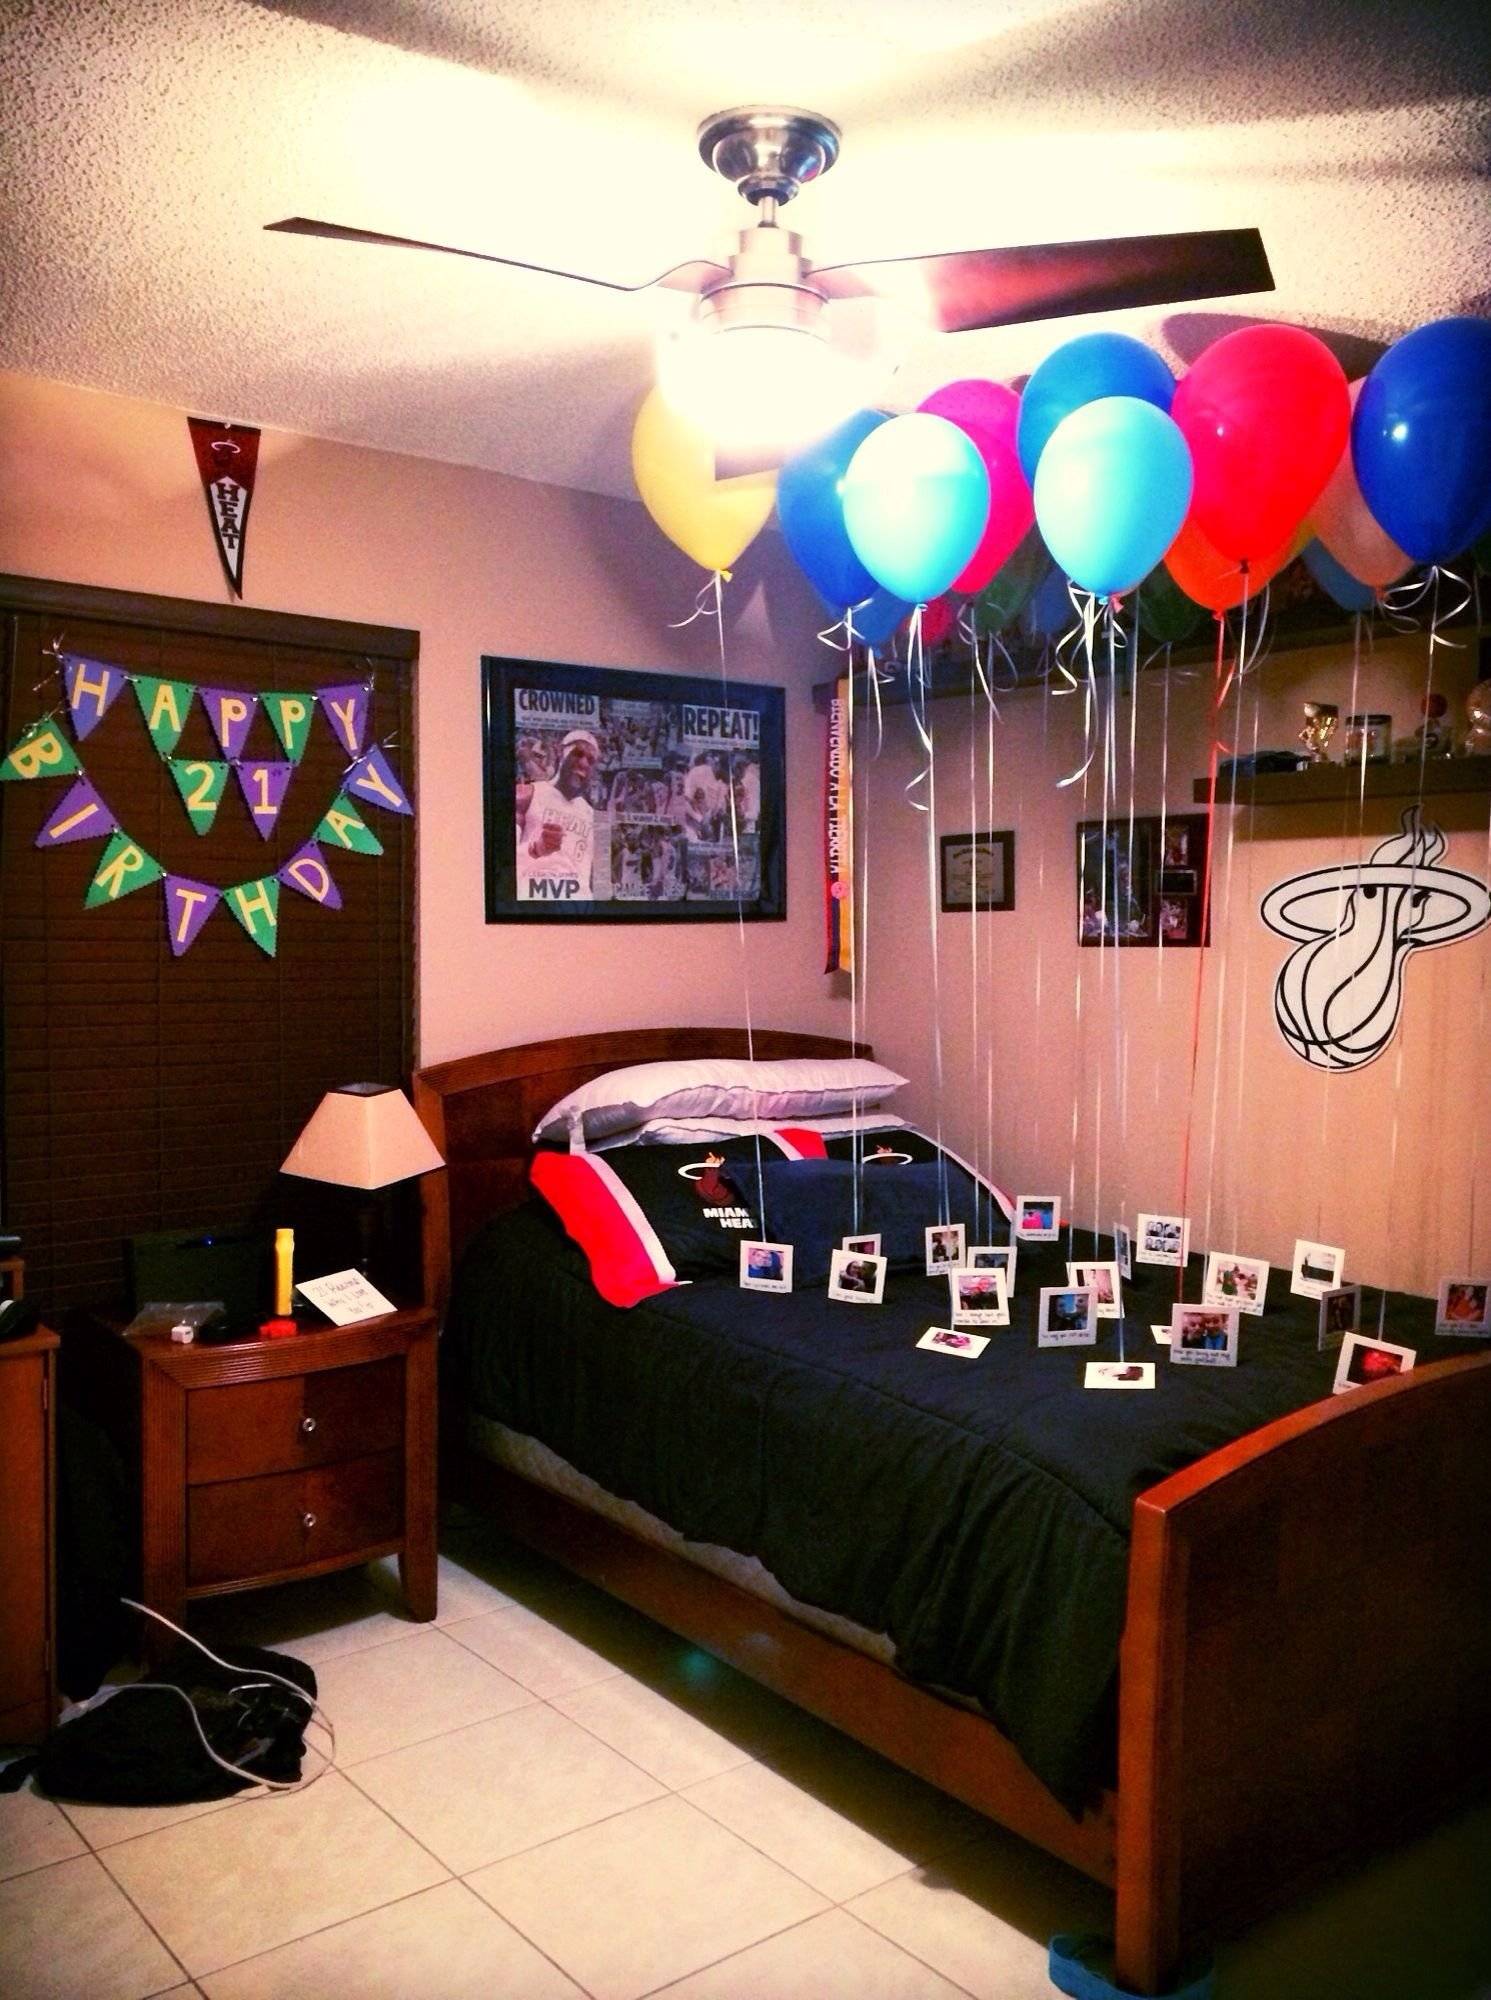 10 Famous Surprise Birthday Ideas For Husband birthday surprise for boyfriend 21st birthday 21 reasons why i 1 2020